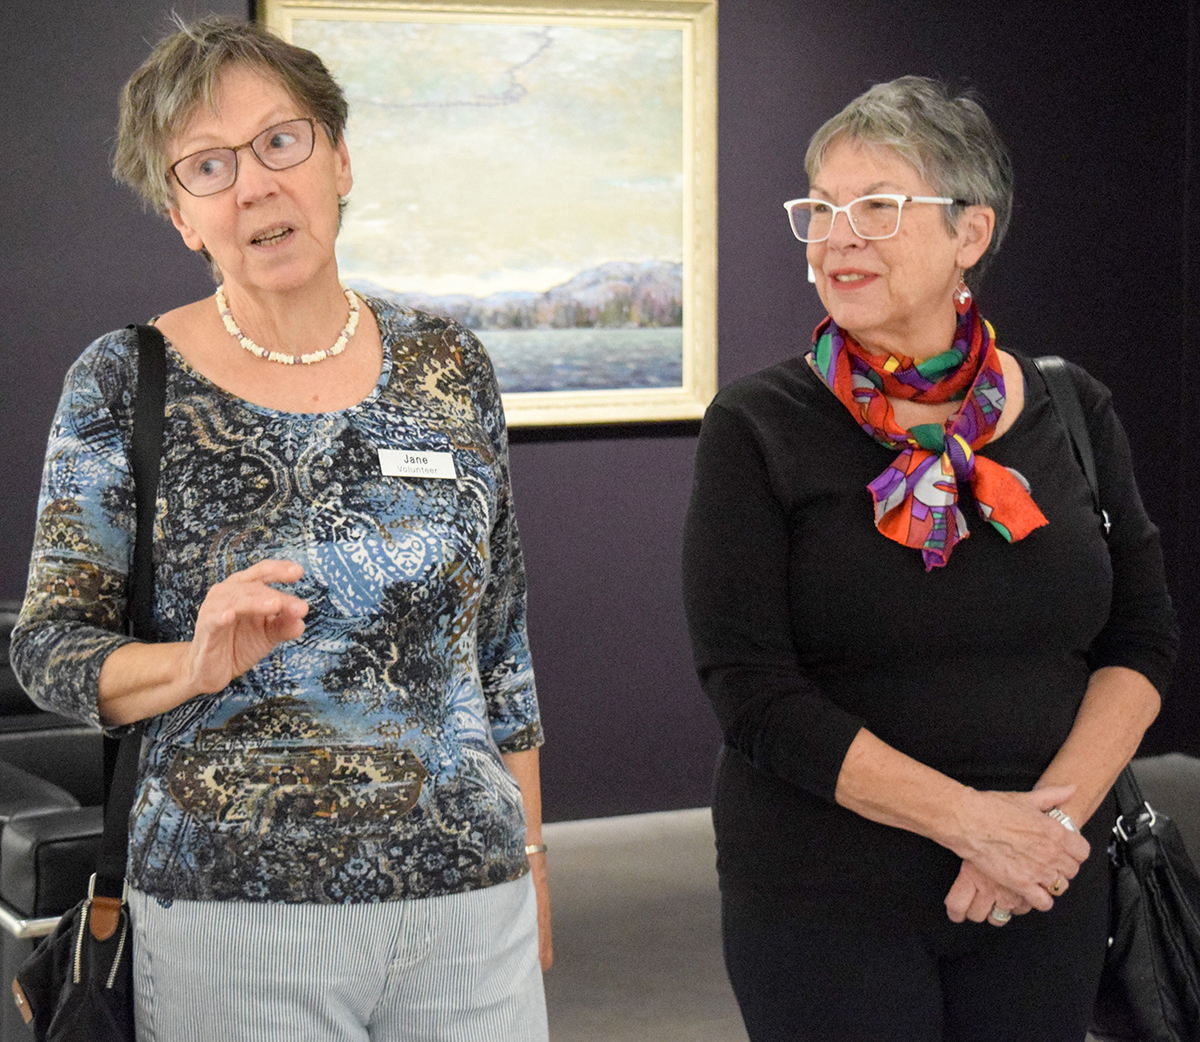 Docent Jane Bouchette, left, conducts a tour at JNAAG with Anne Craig, right, and a group from Wellings of Corunna. Cathy Dobson